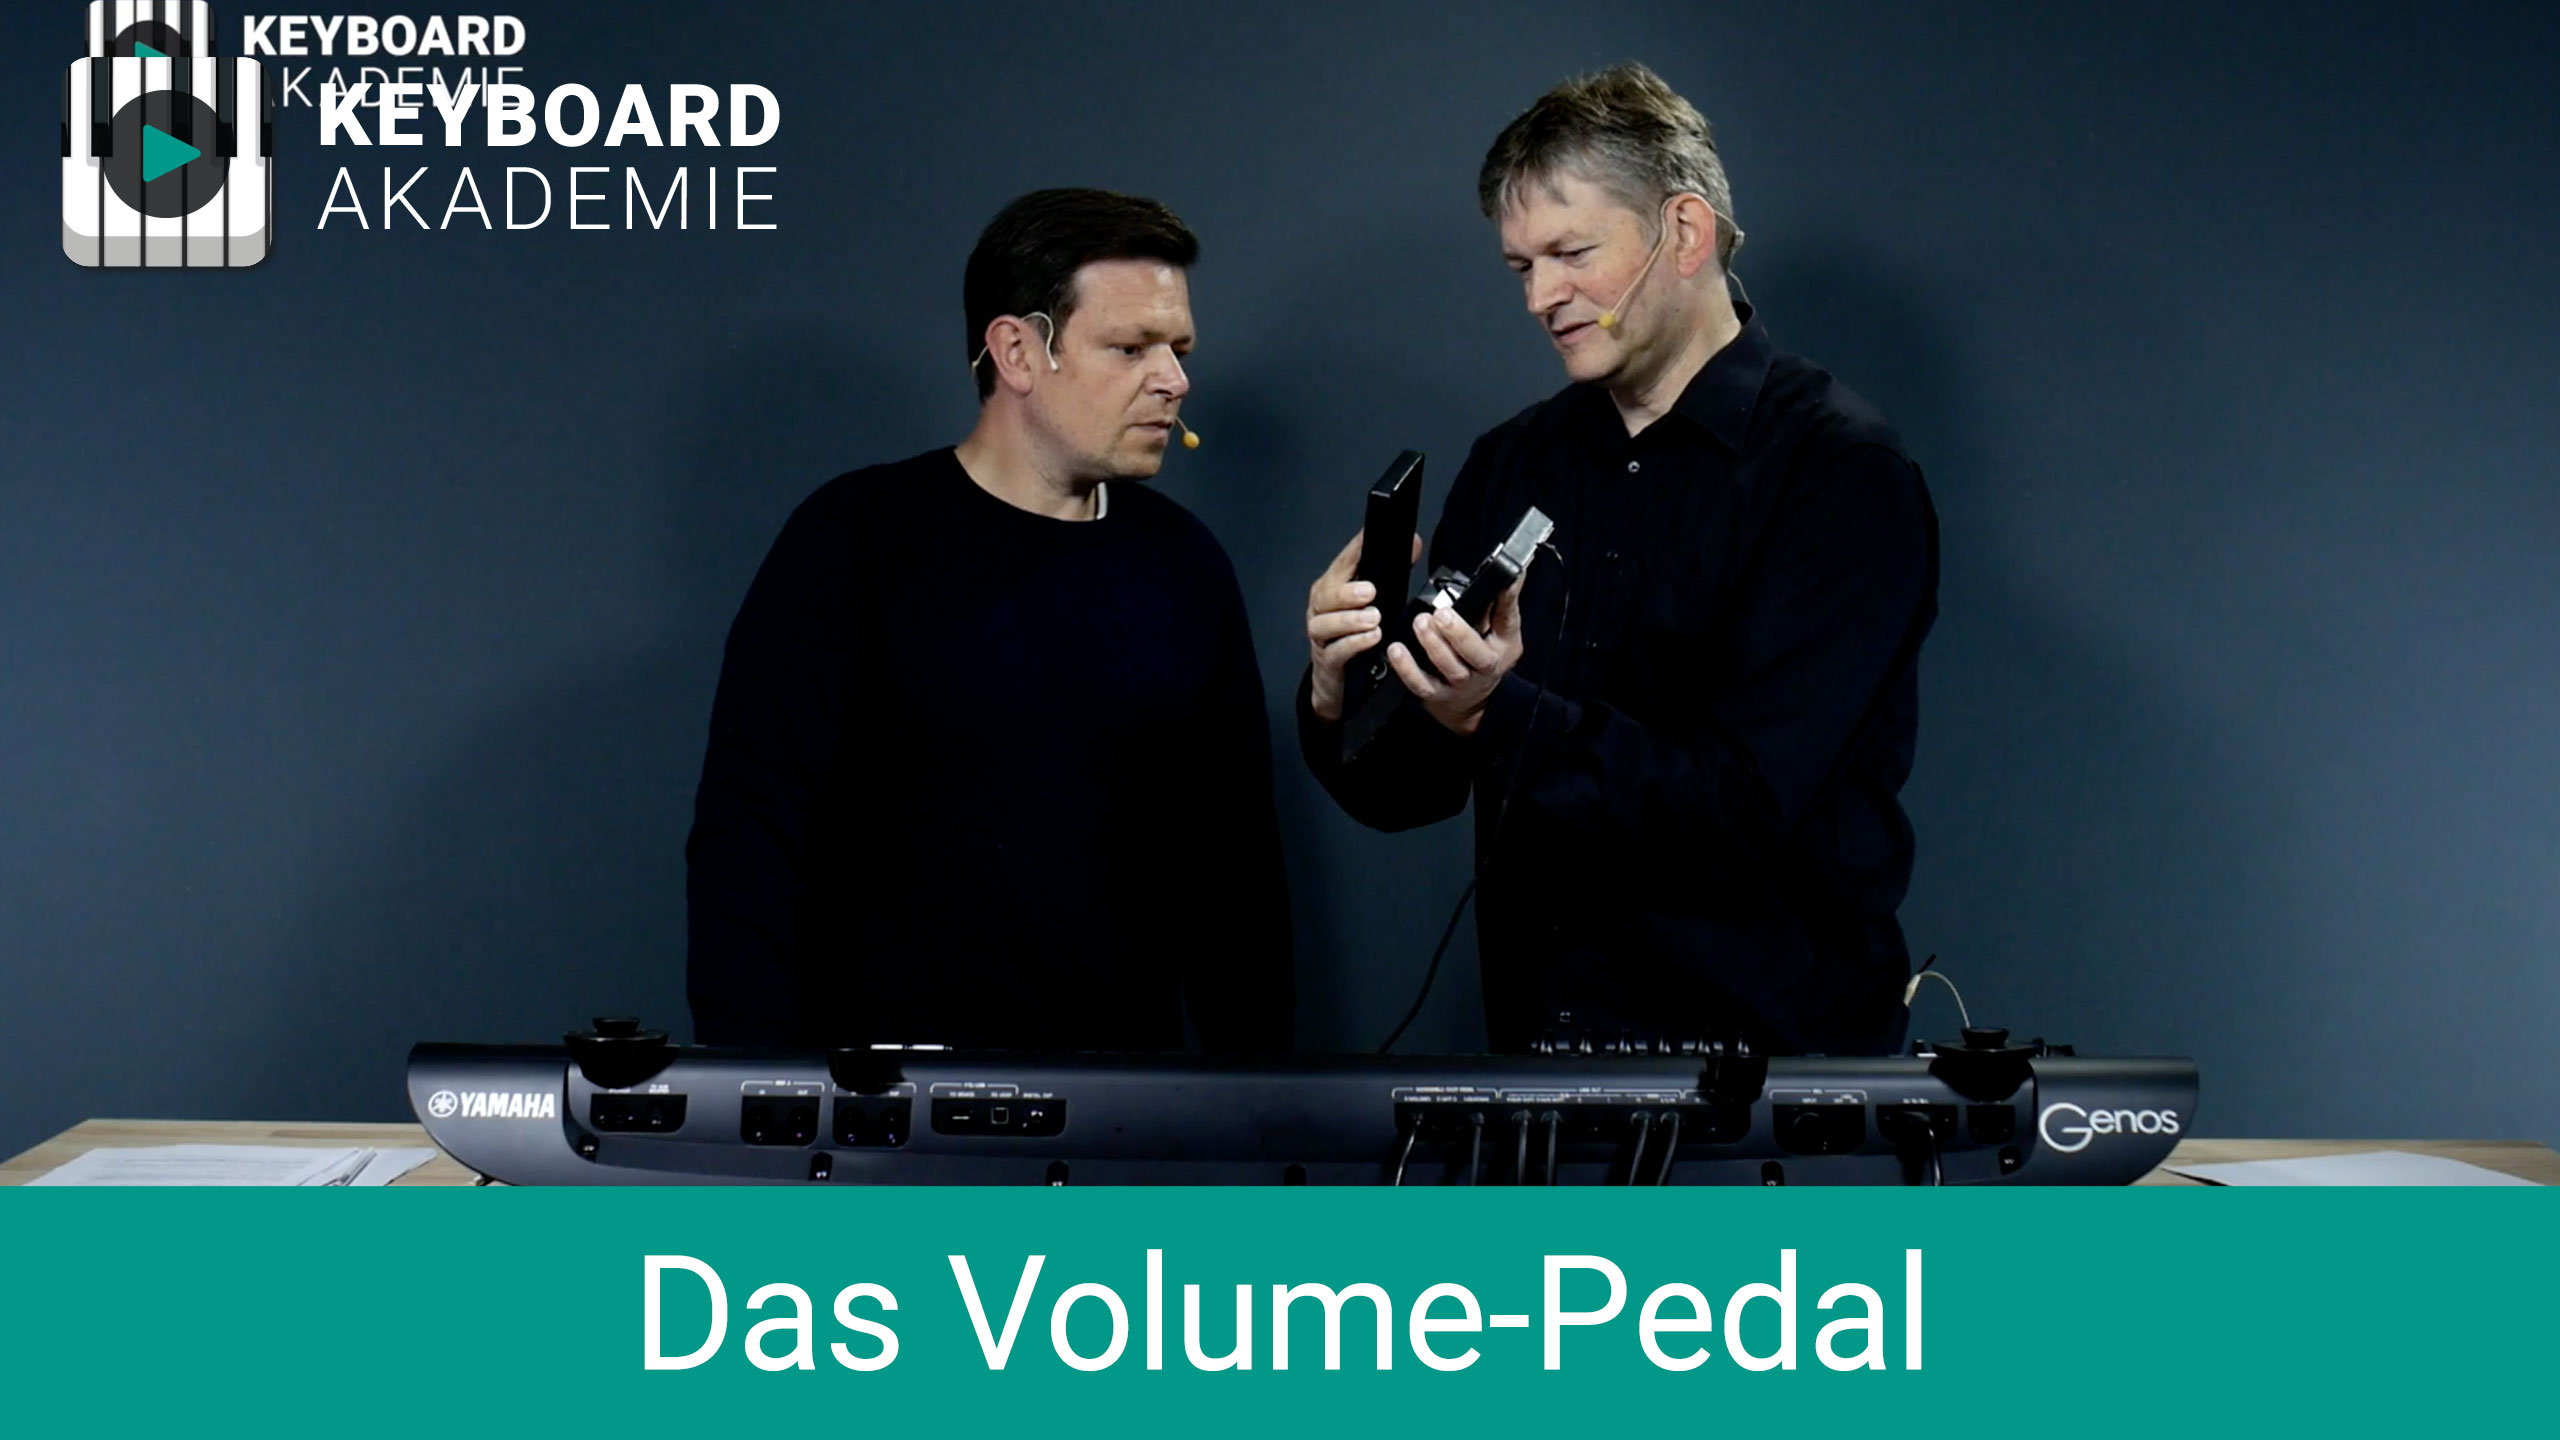 Das Volume-Pedal | Genos | Power-Tipp